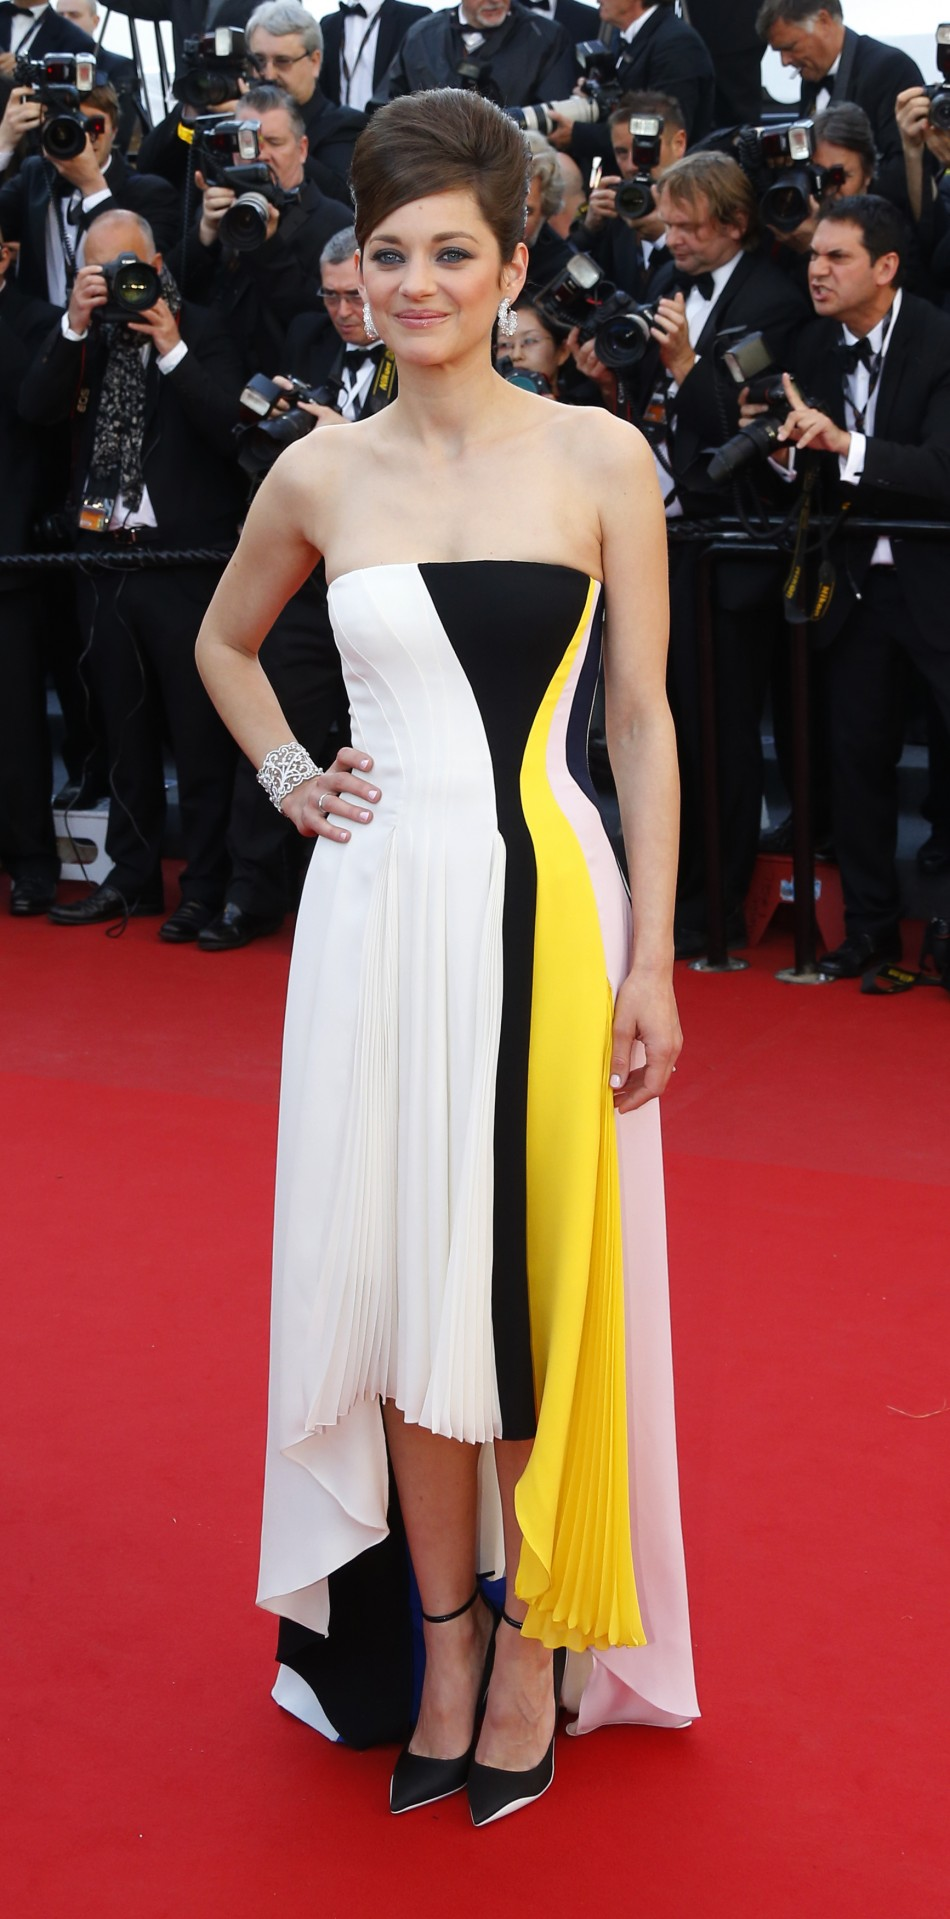 Cast member Marion Cotillard poses on the red carpet as she arrives for the screening of the film Blood Ties during the 66th Cannes Film Festival in Cannes May 20, 2013.